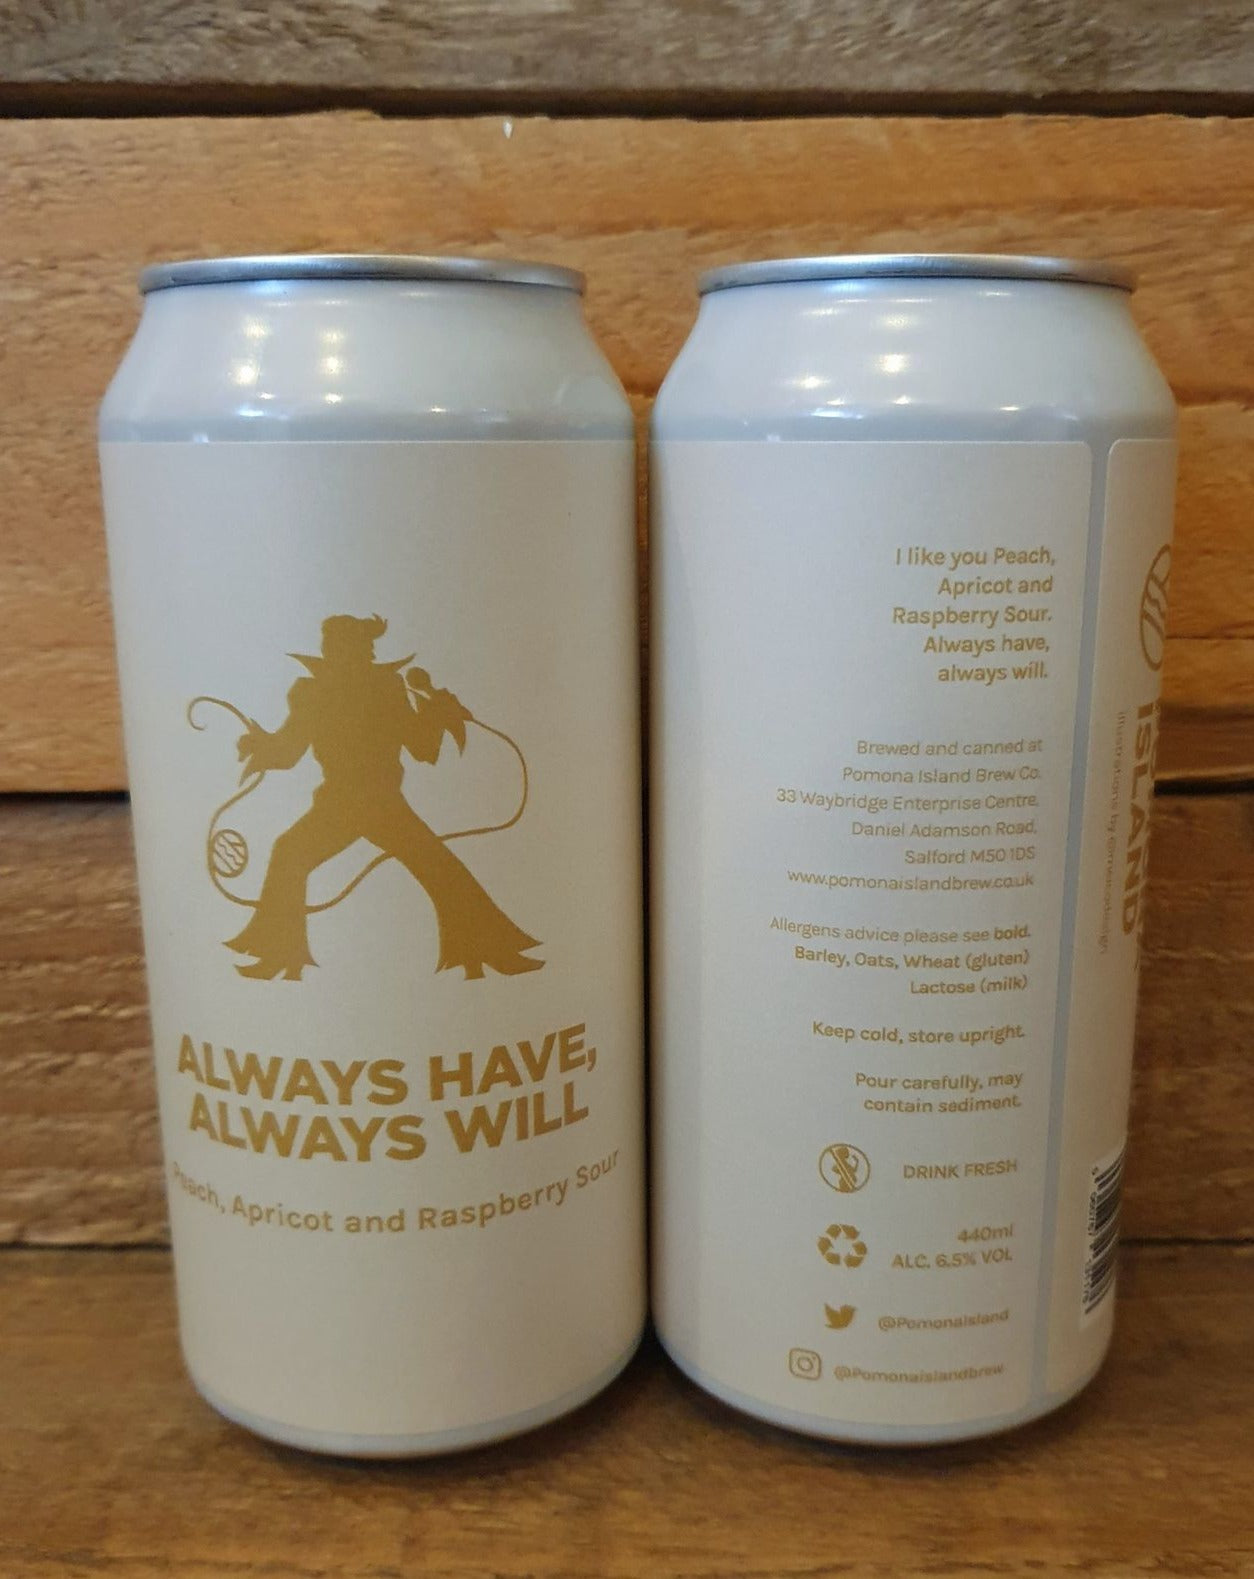 Pomona Island - Always Have, Always Will Peach, Apricot and Raspberry Sour 6.5% 440ml